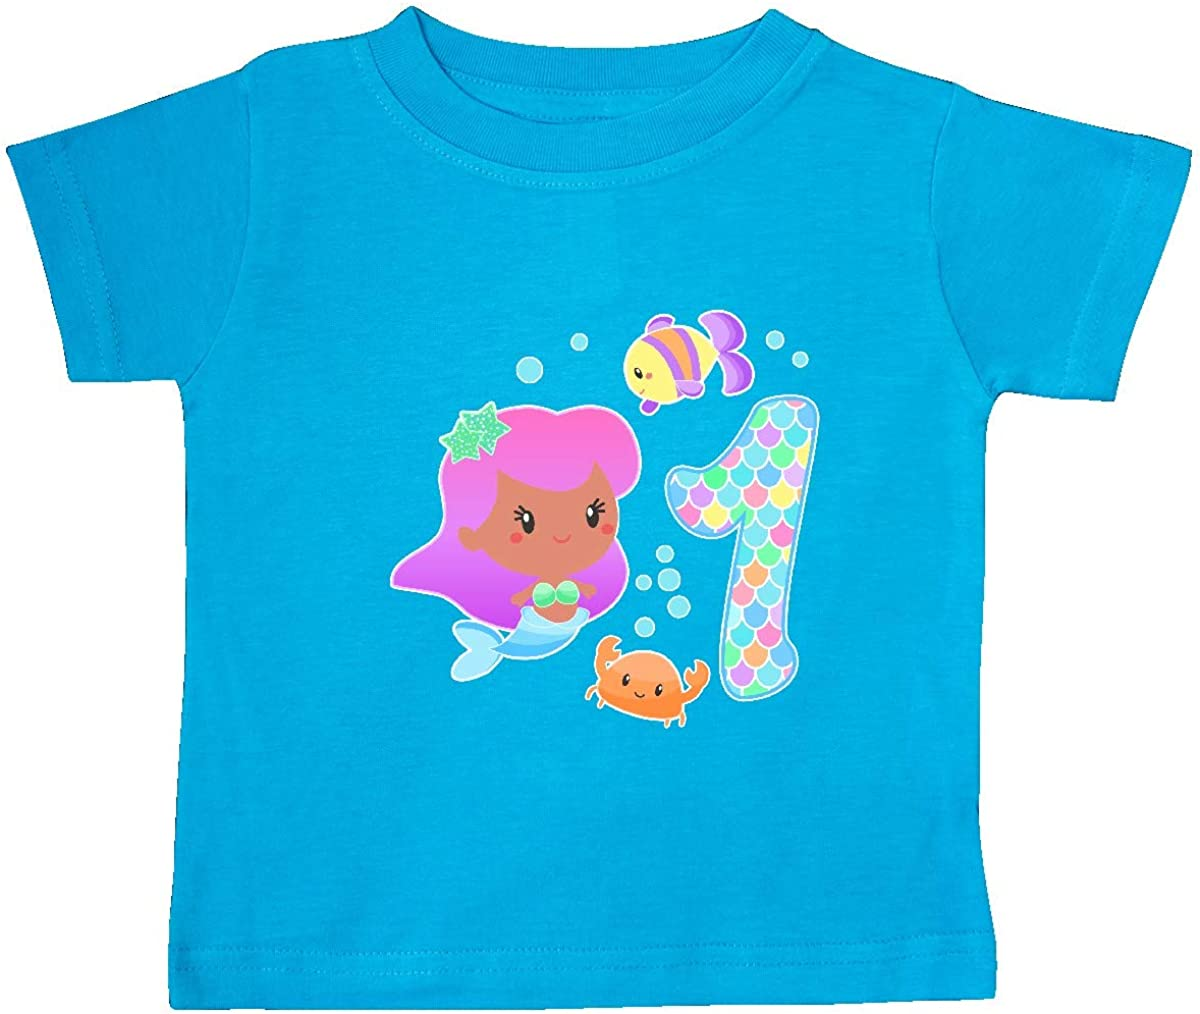 inktastic First Birthday Mermaid with Baby T-Shirt 18 Months Turquoise 36606